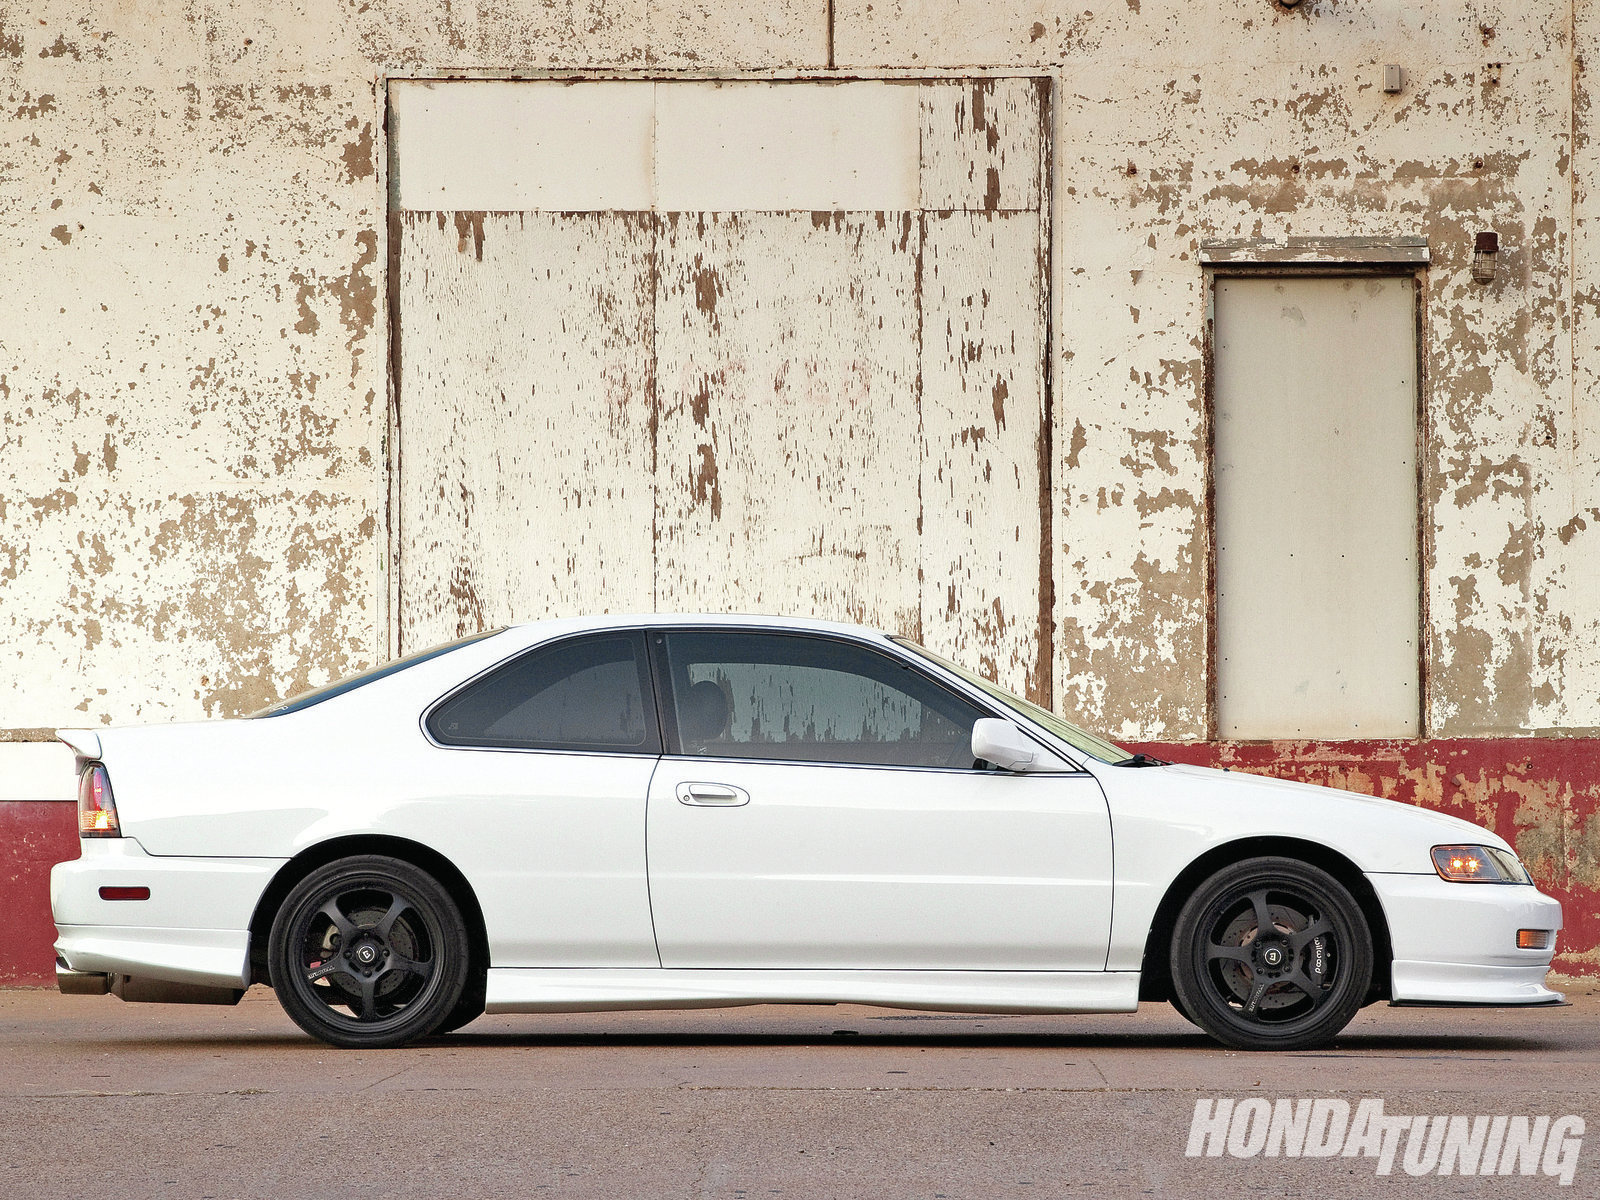 1996 Honda Accord Ex 419hp On Purpose Honda Tuning Magazine